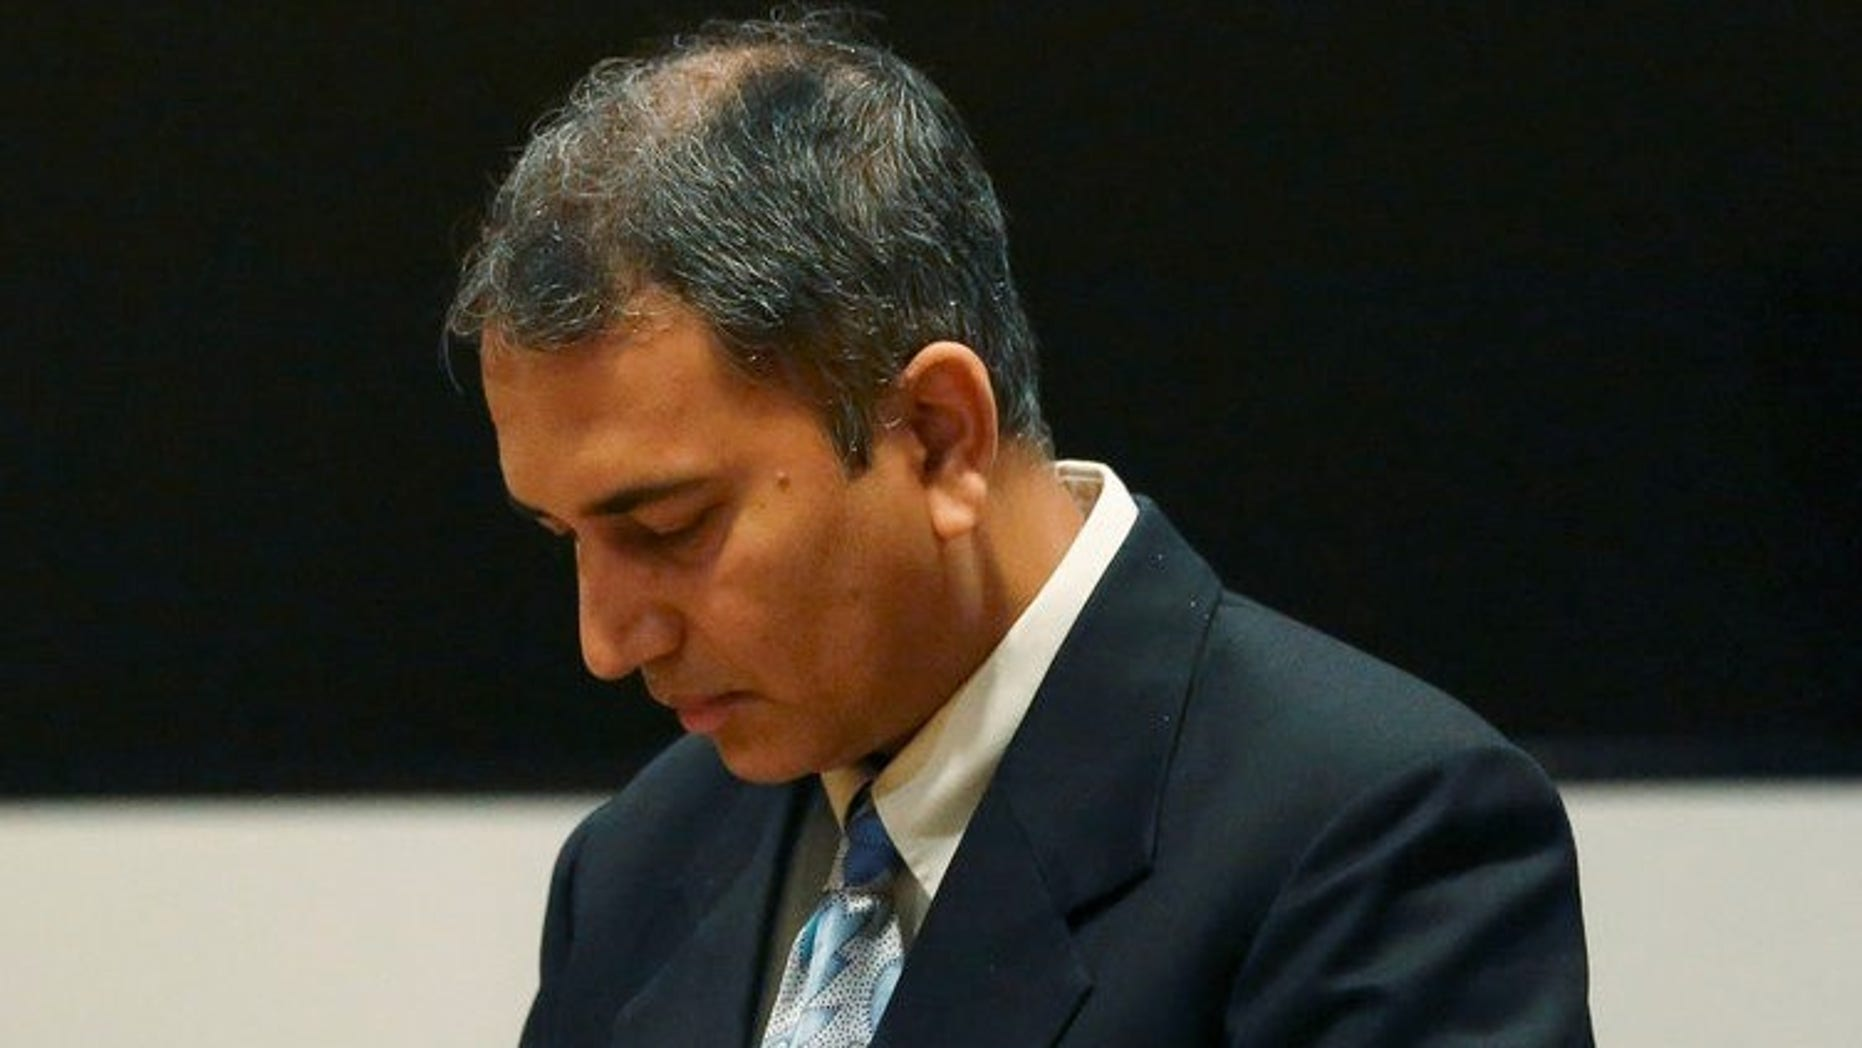 Dr. Shafeeq Sheikh at his sentencing on Friday.